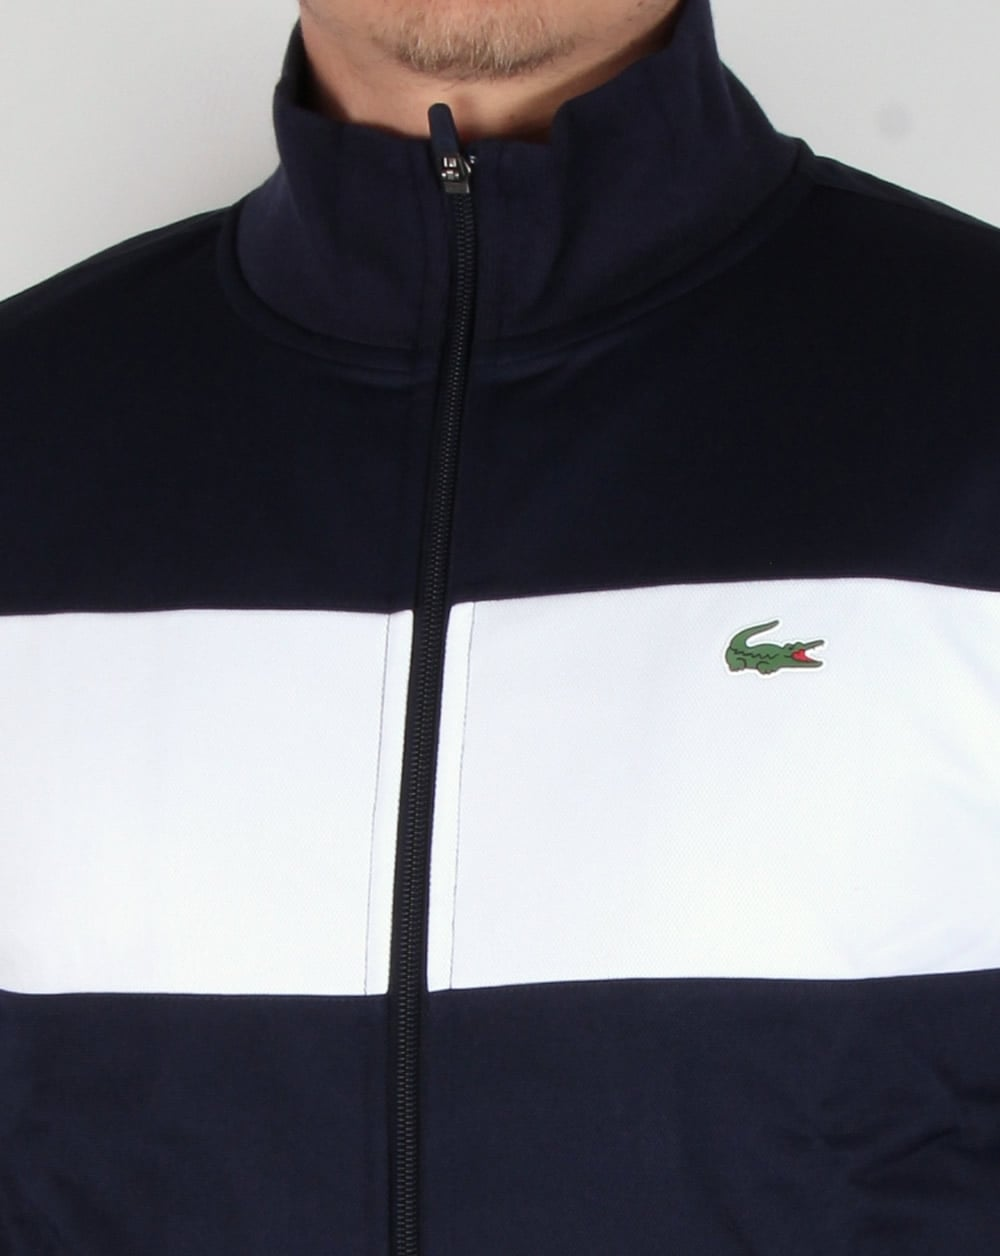 The Deal Rack is an online discount clothing retailer and wholesaler offering name brand clothes for less including free shipping and price matching. We sell online men's clothing and women's clothes including shirts, t-shirts, tops, tank tops, golf shirts, fleece, jackets and more from brands such as Champion, Bella+Canvas, Next Level.